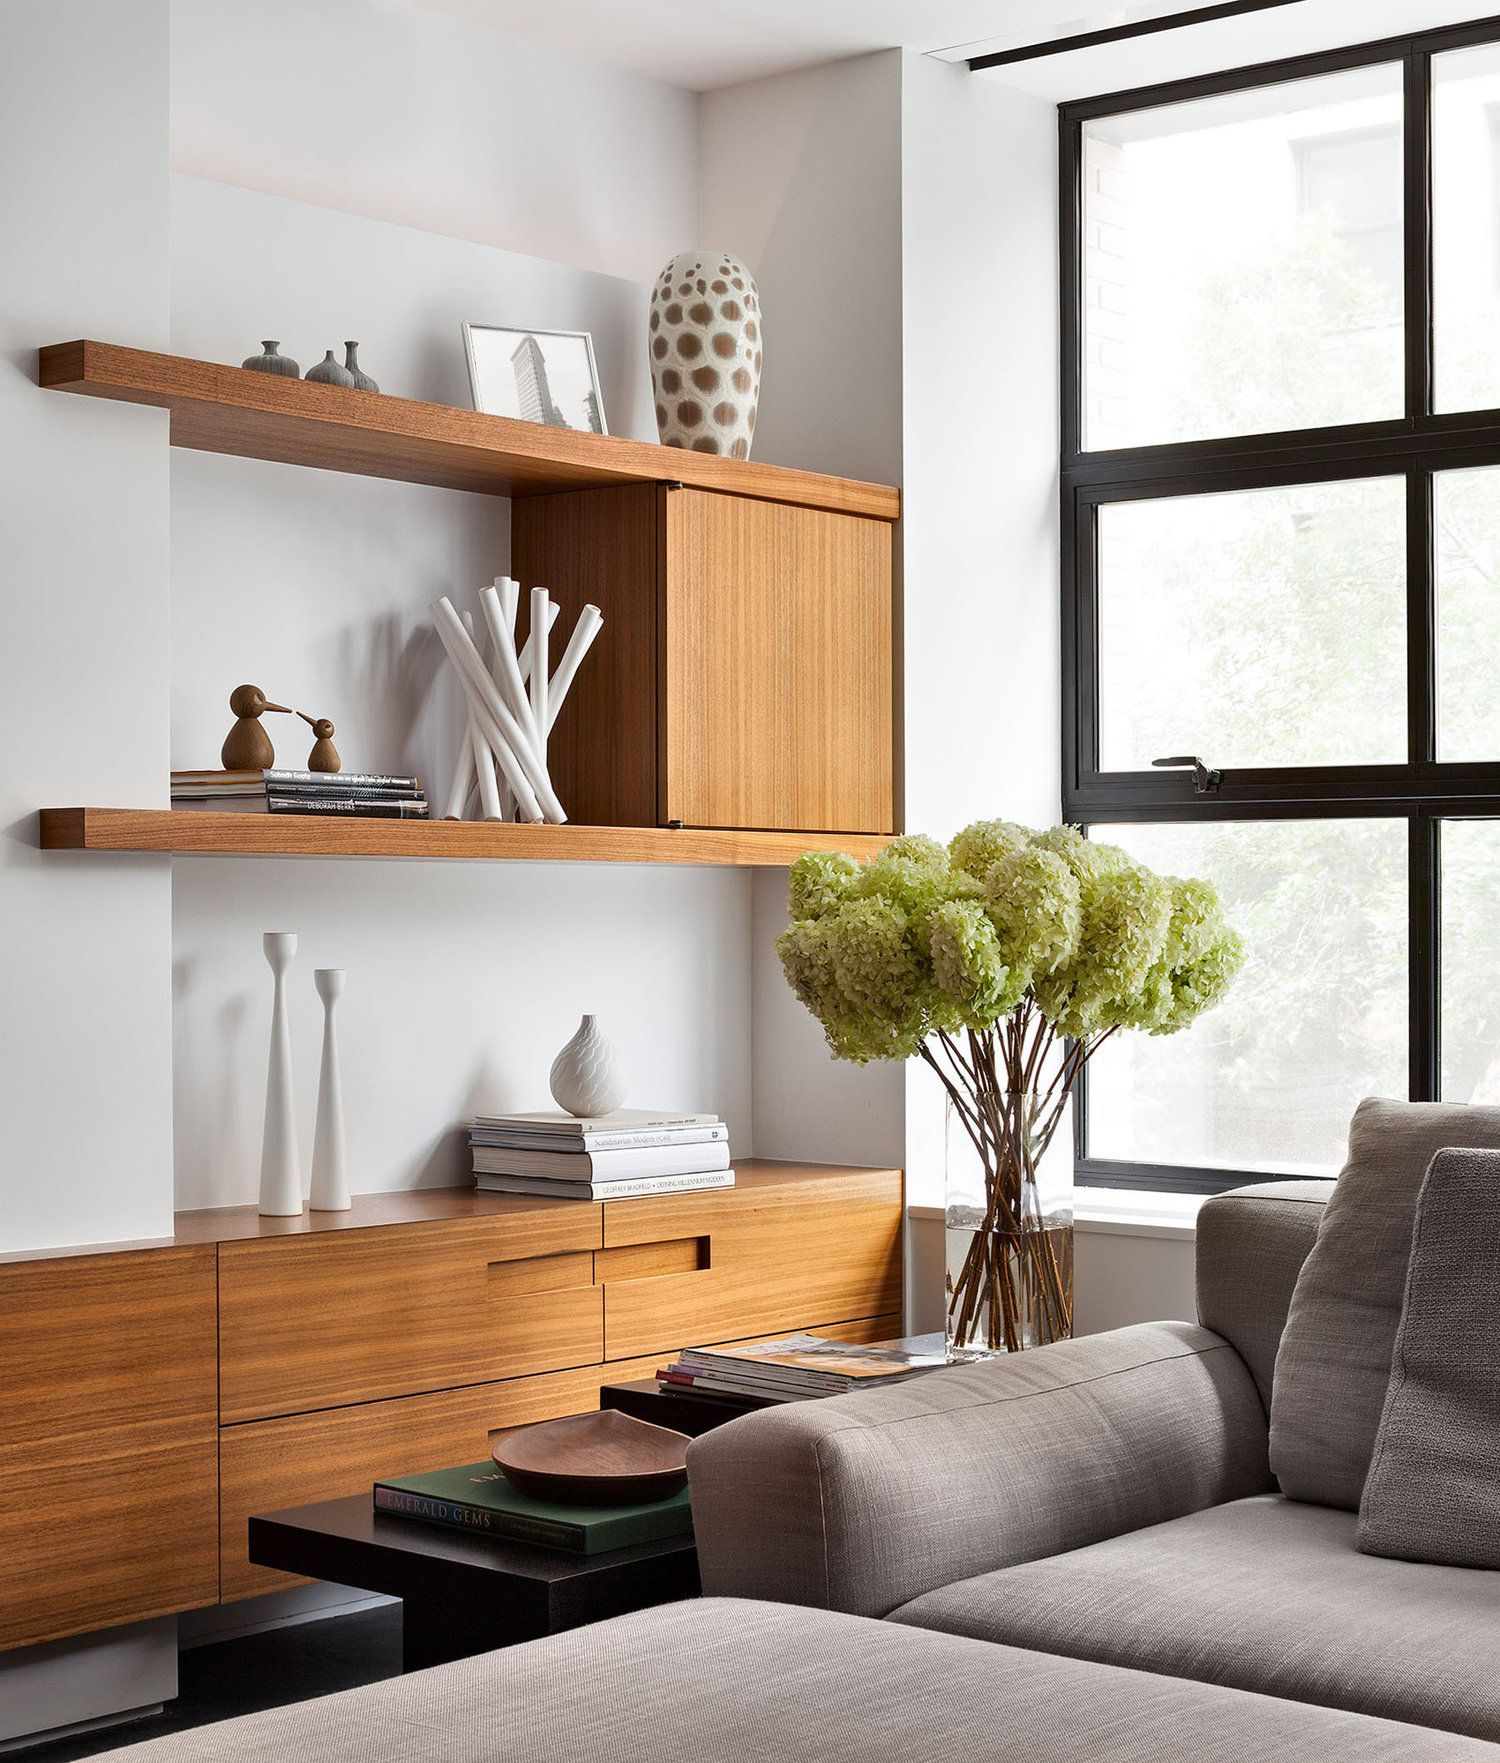 living room wall cabinets built%0A Floating builtin with shelves wrapping over a wall